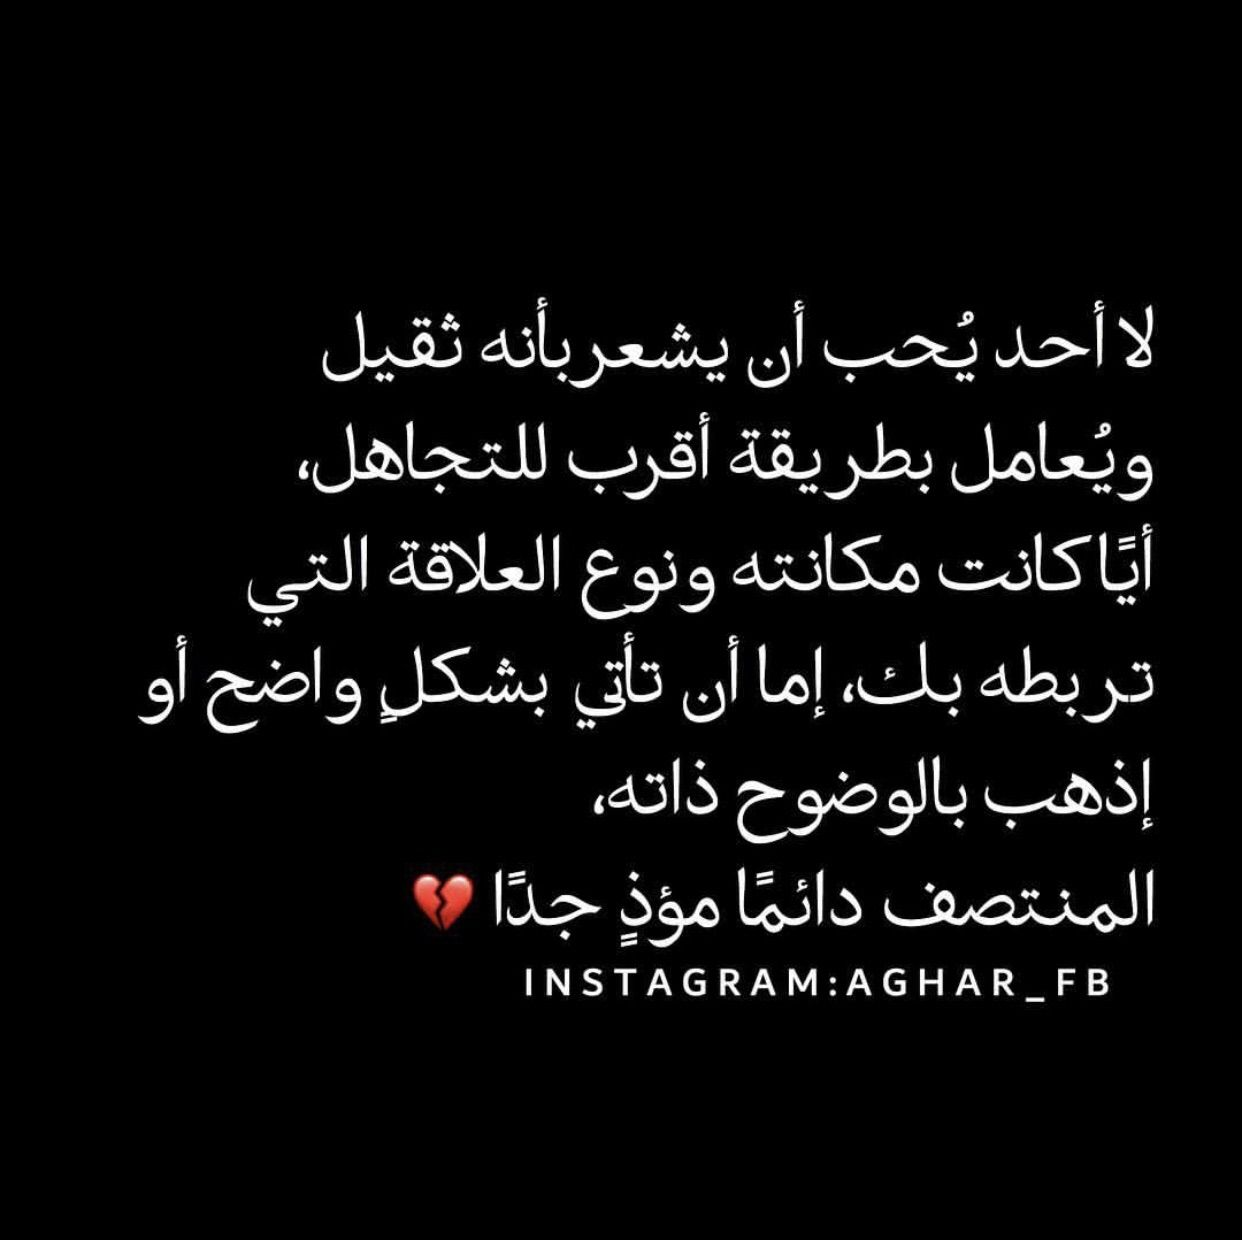 Pin By نوف الدوسري On אוכתי Photo Quotes Friendship Quotes Arabic Quotes